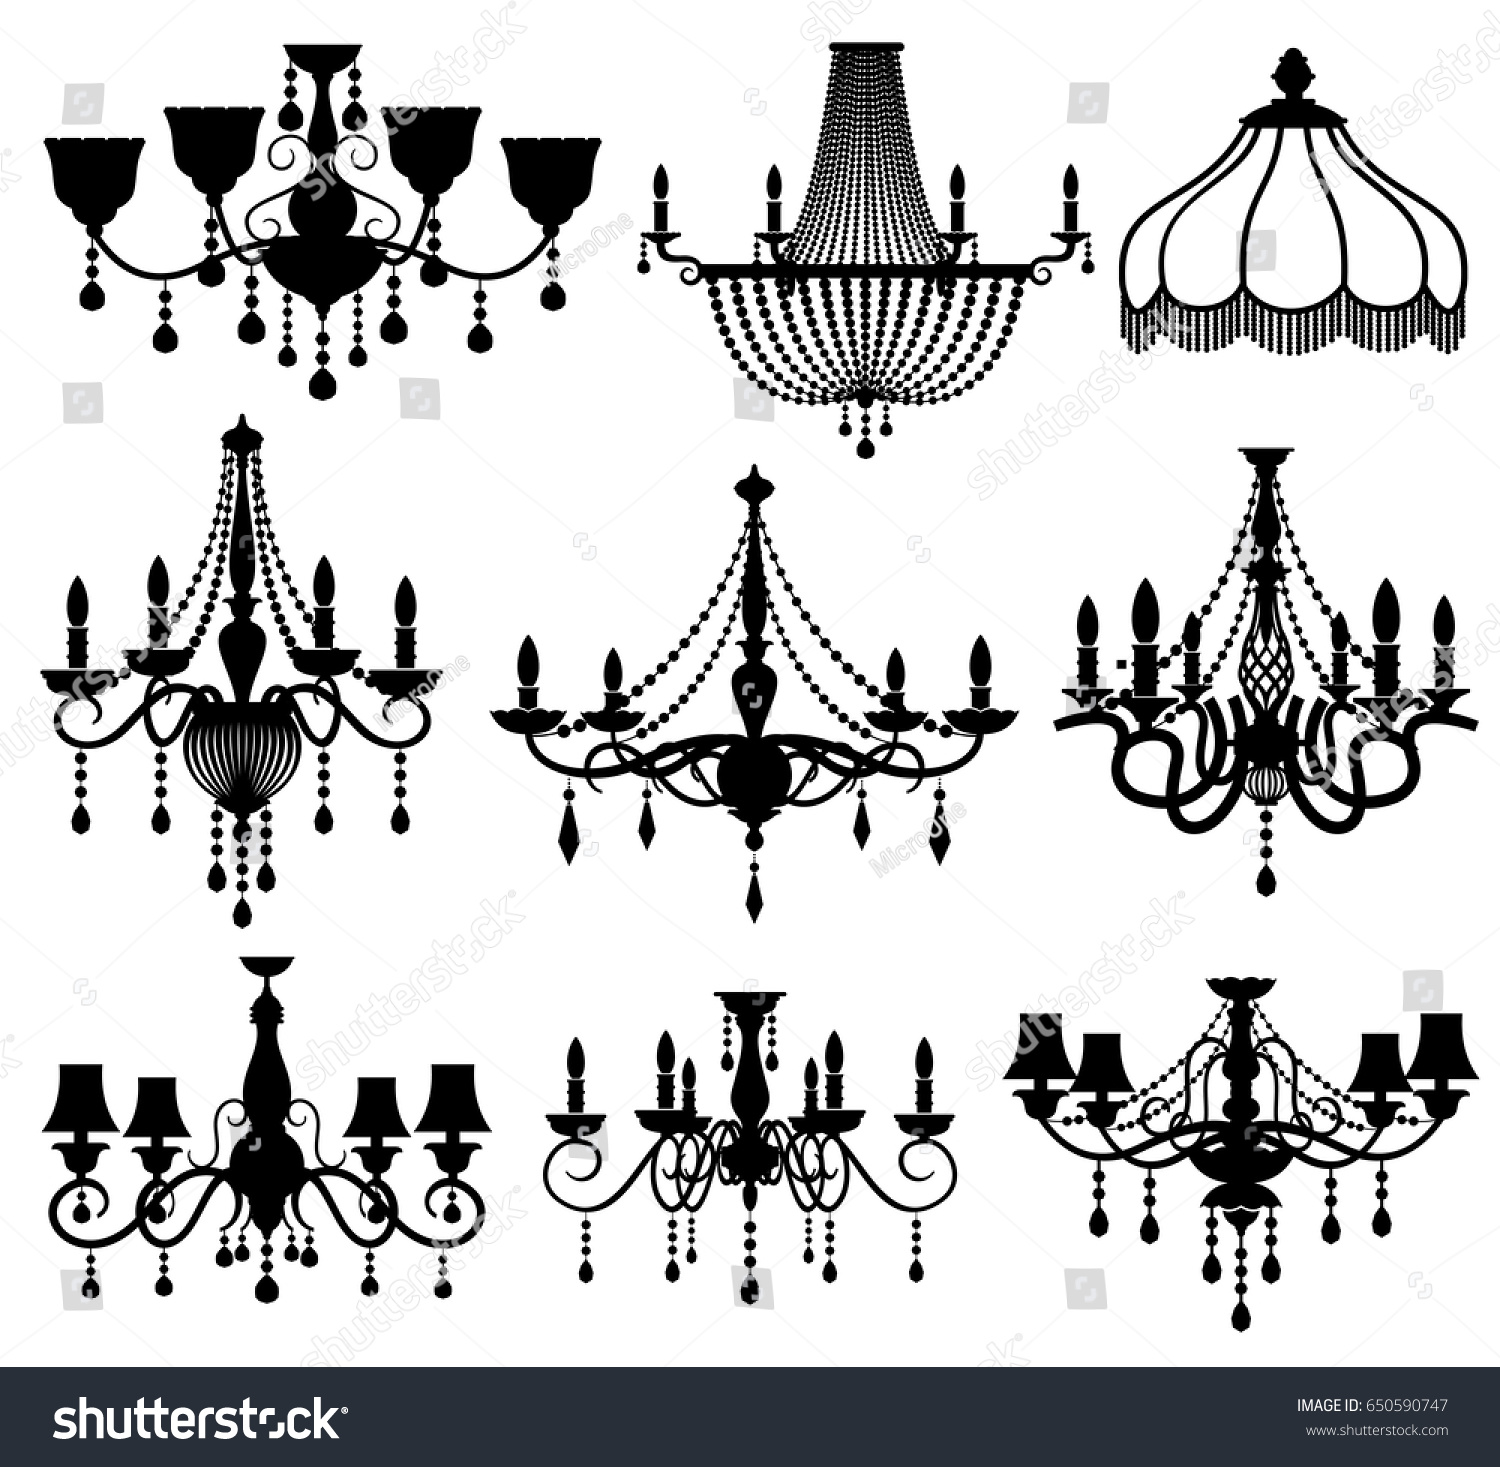 Classic crystal glass antique elegant chandeliers stock vector classic crystal glass antique elegant chandeliers black vector silhouettes arubaitofo Image collections